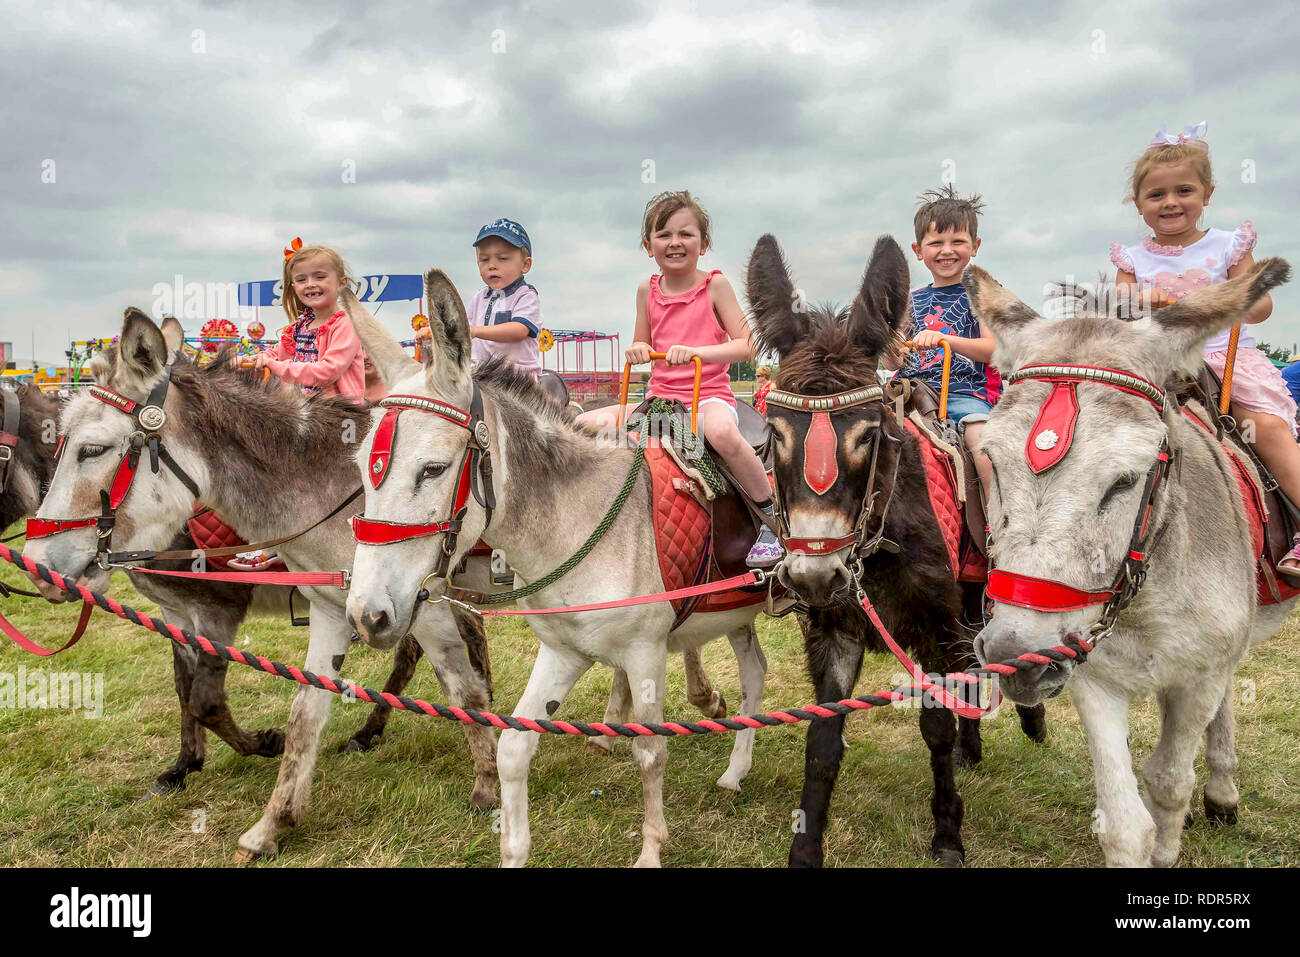 Happy children on donkey rides. Stock Photo